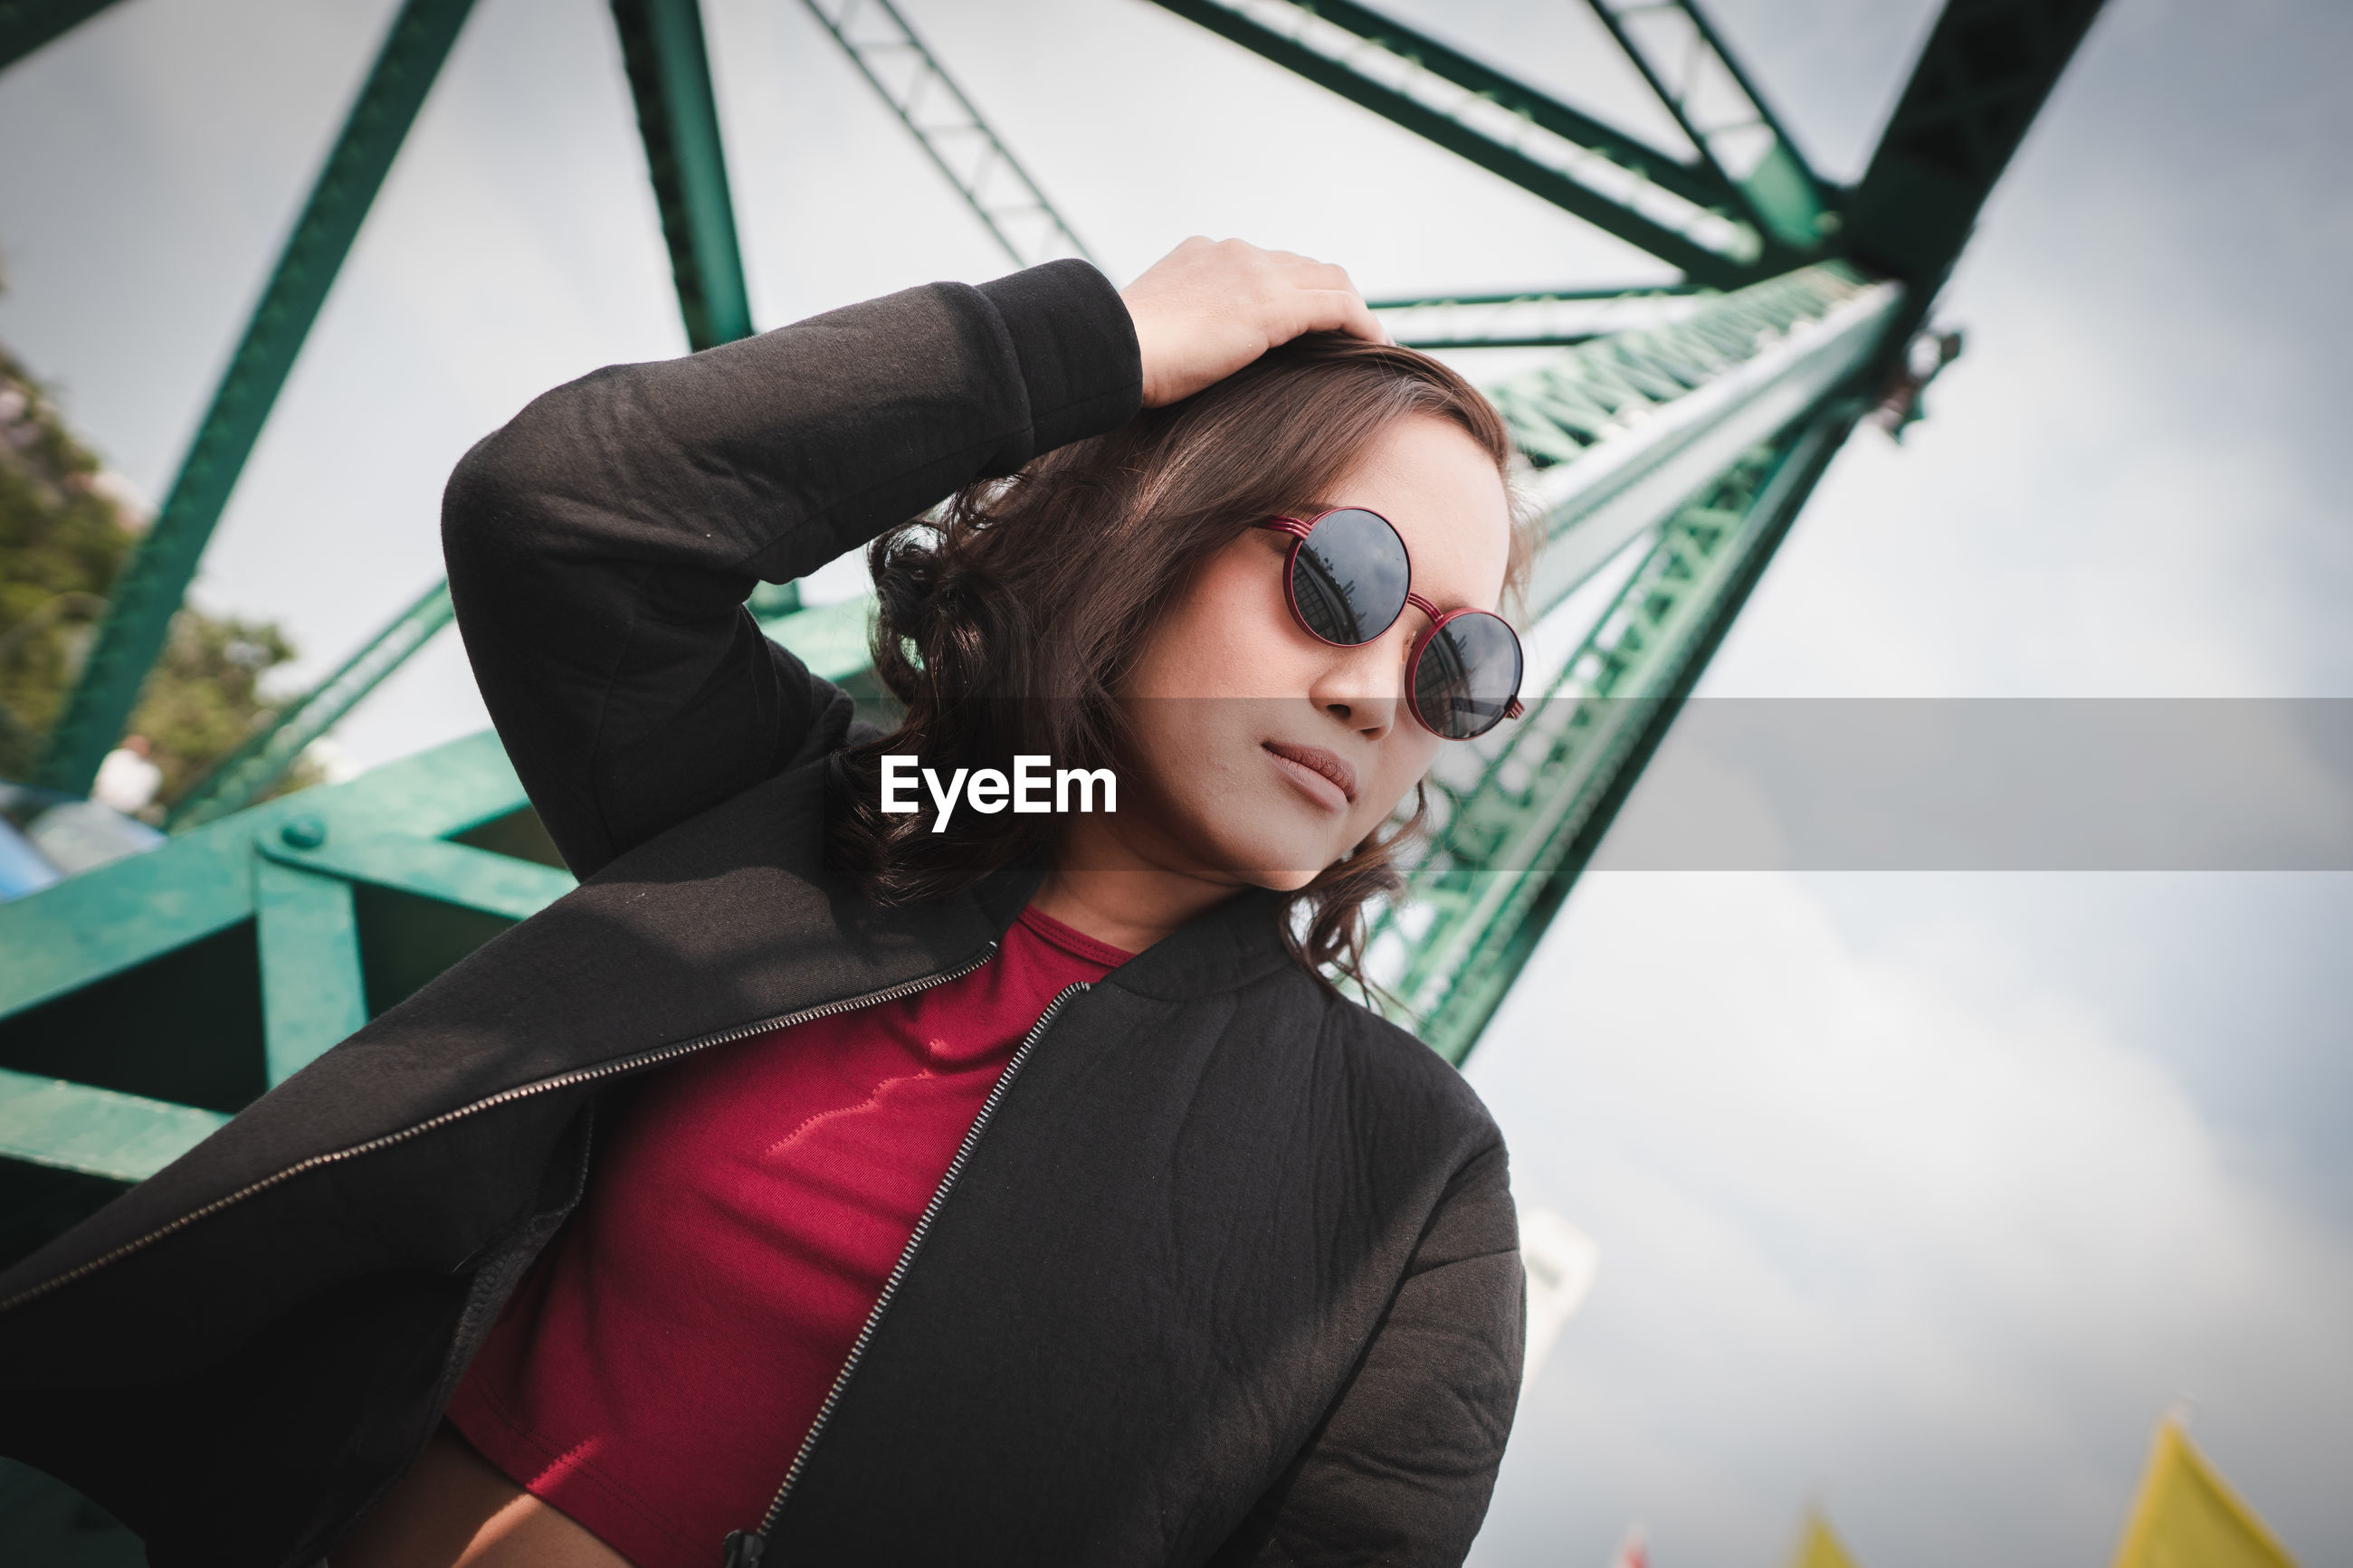 Woman wearing sunglasses against metallic structure and sky